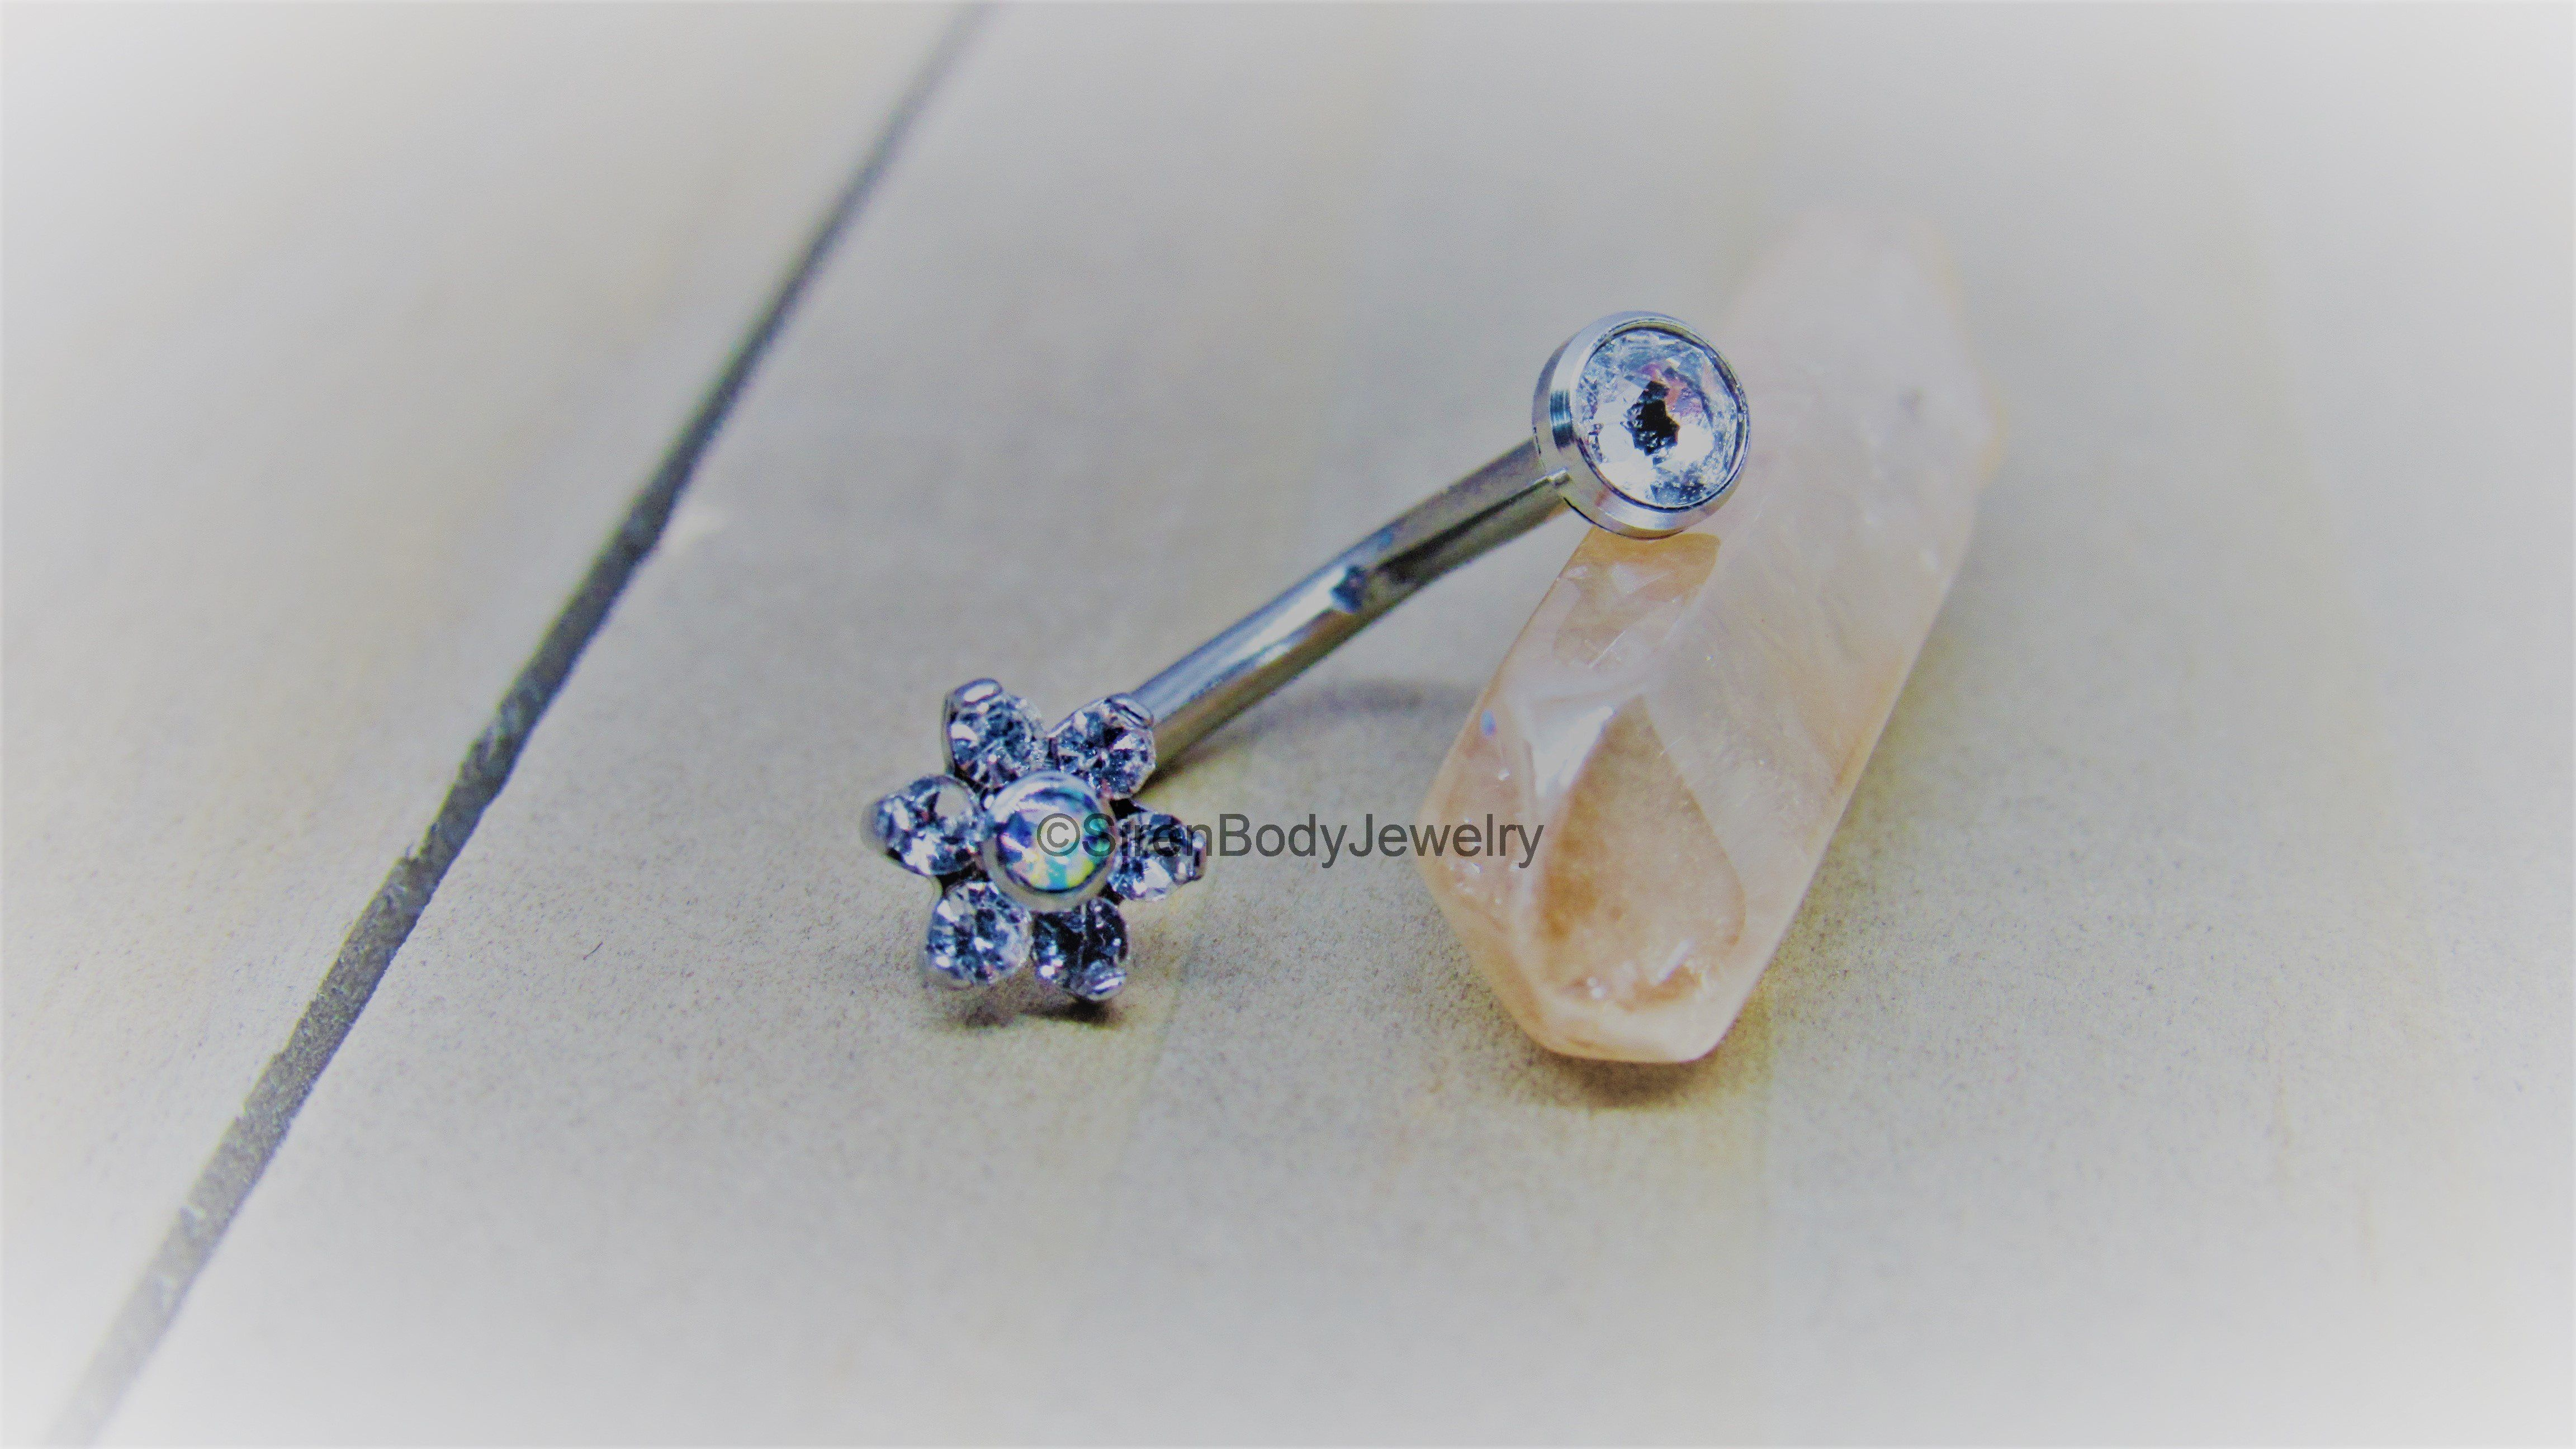 Belly button piercing jewellery  J curve belly button piercing ring g deep navel piercing barbell